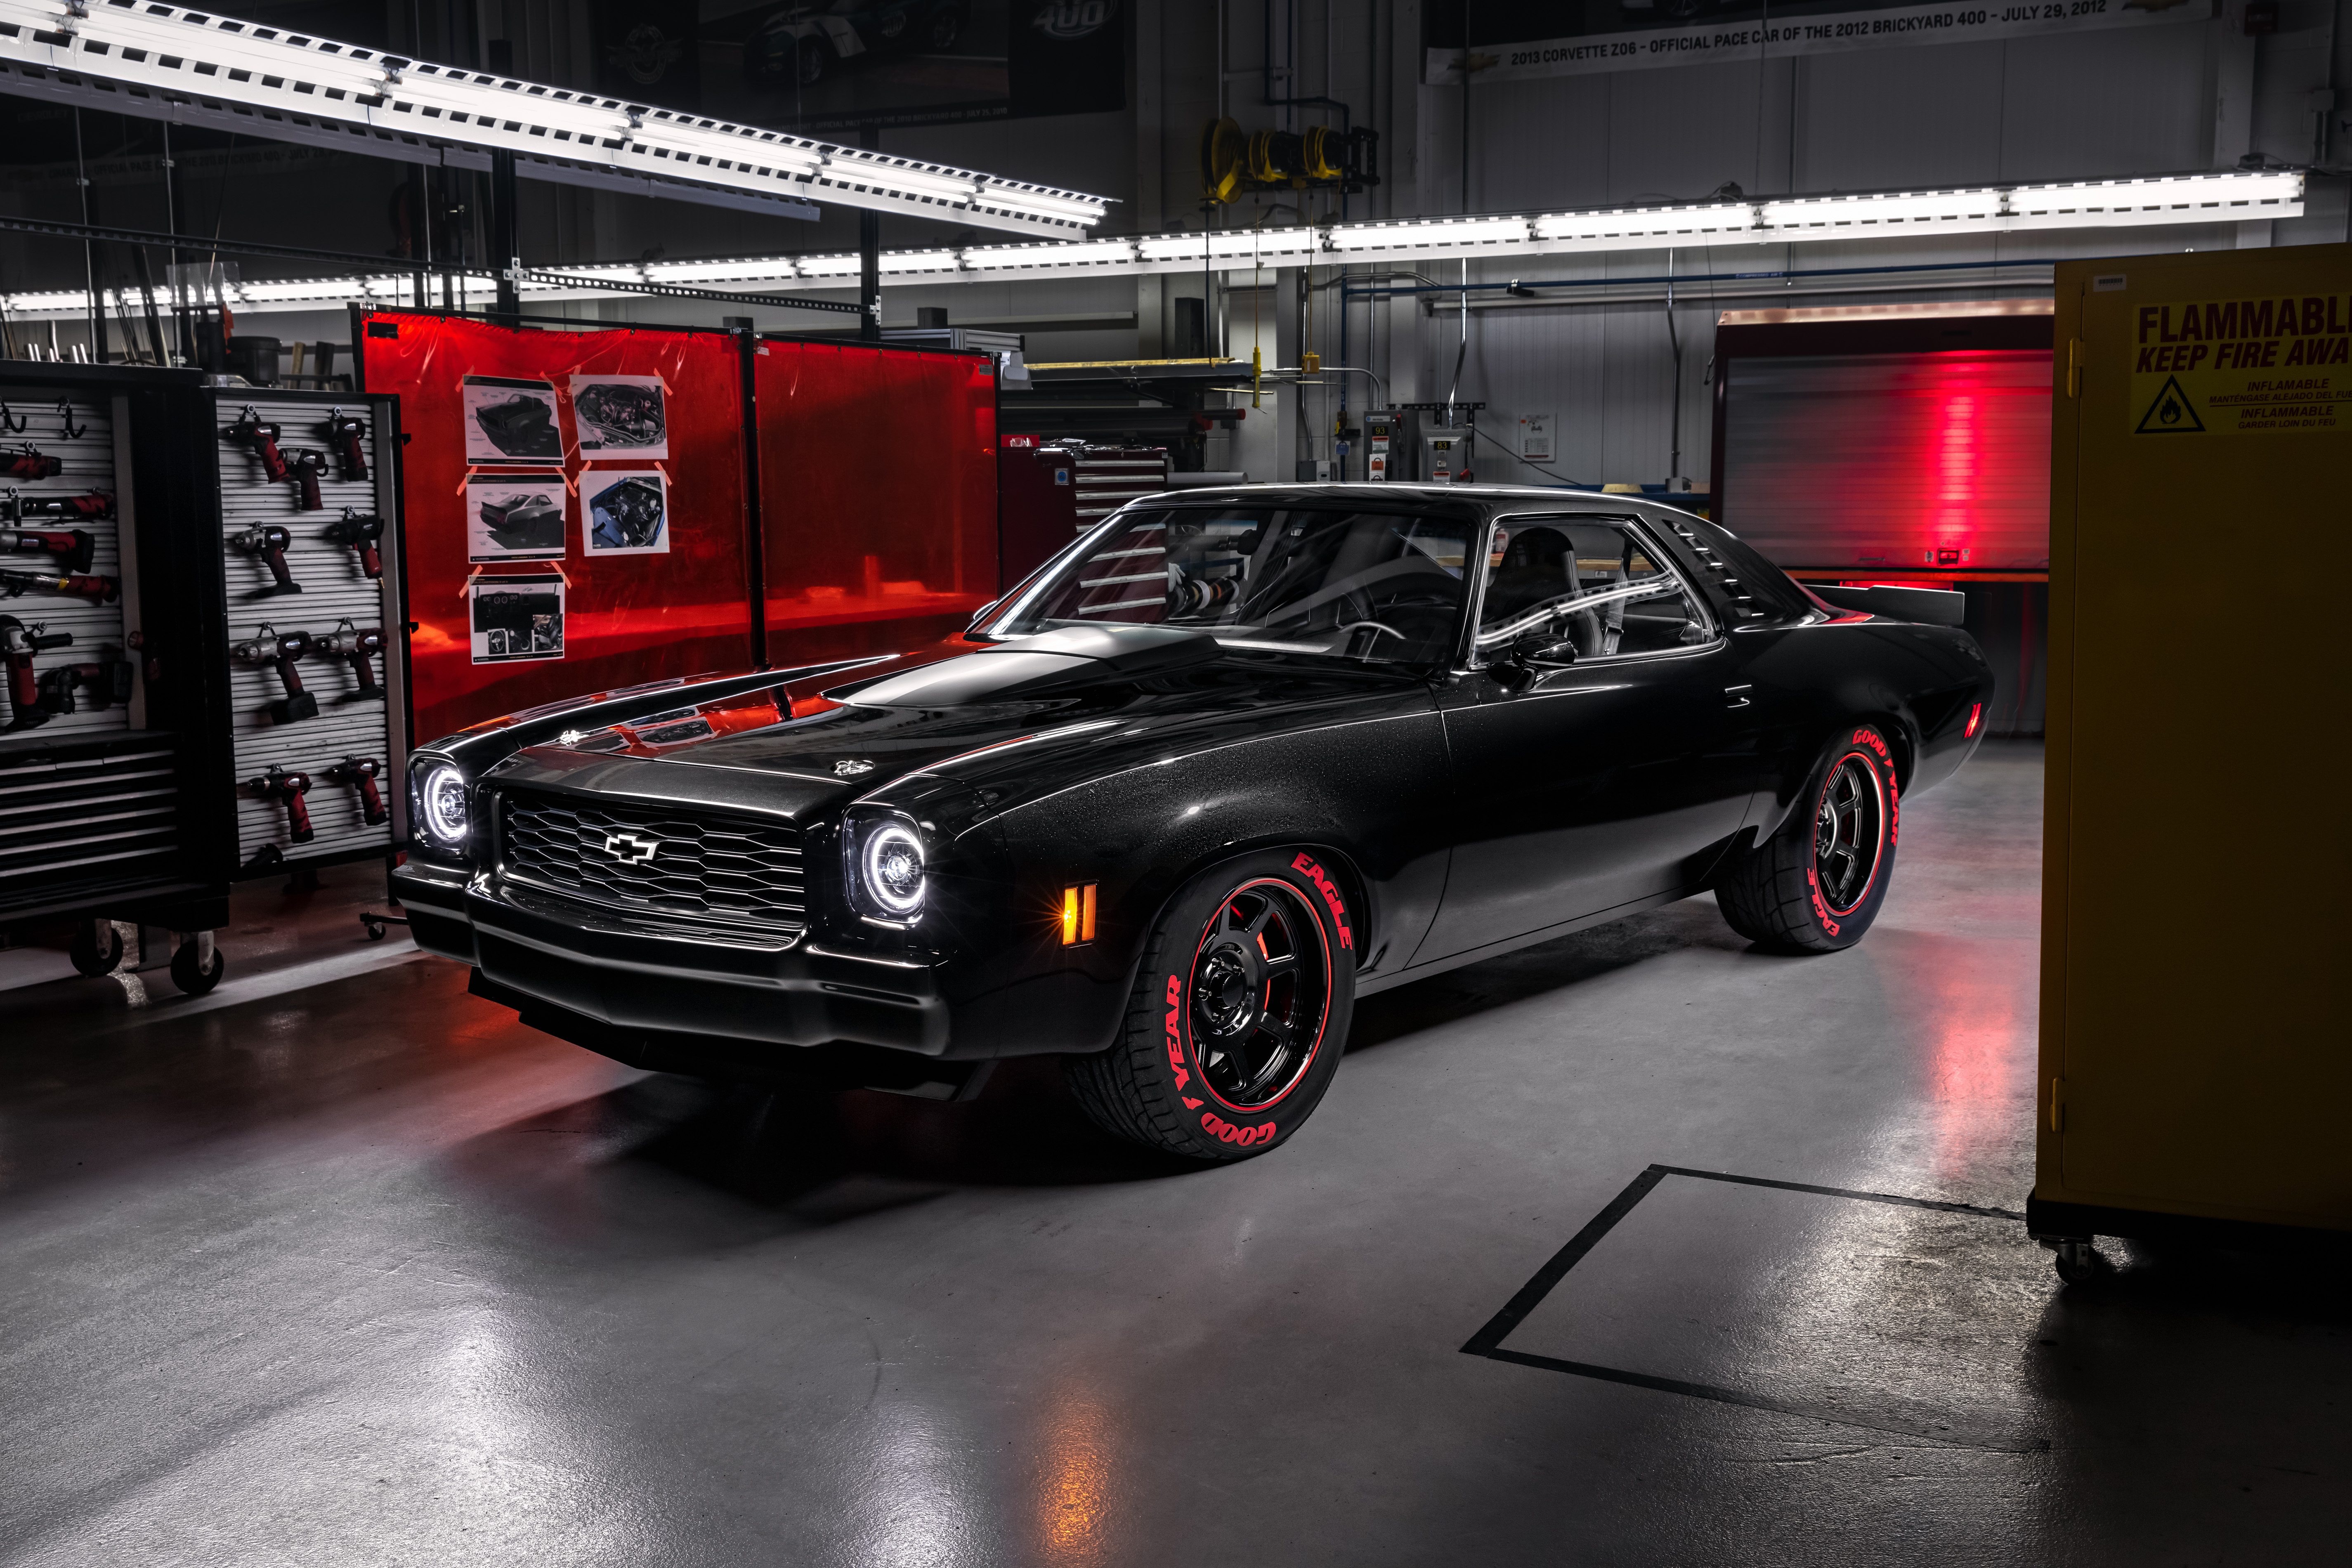 Chevrolet's racing-inspired 1973 Chevelle Laguna SEMA show car showcases the new LT5 crate engine, which is rated at 755 hp and 715 lb.-ft. of torque.